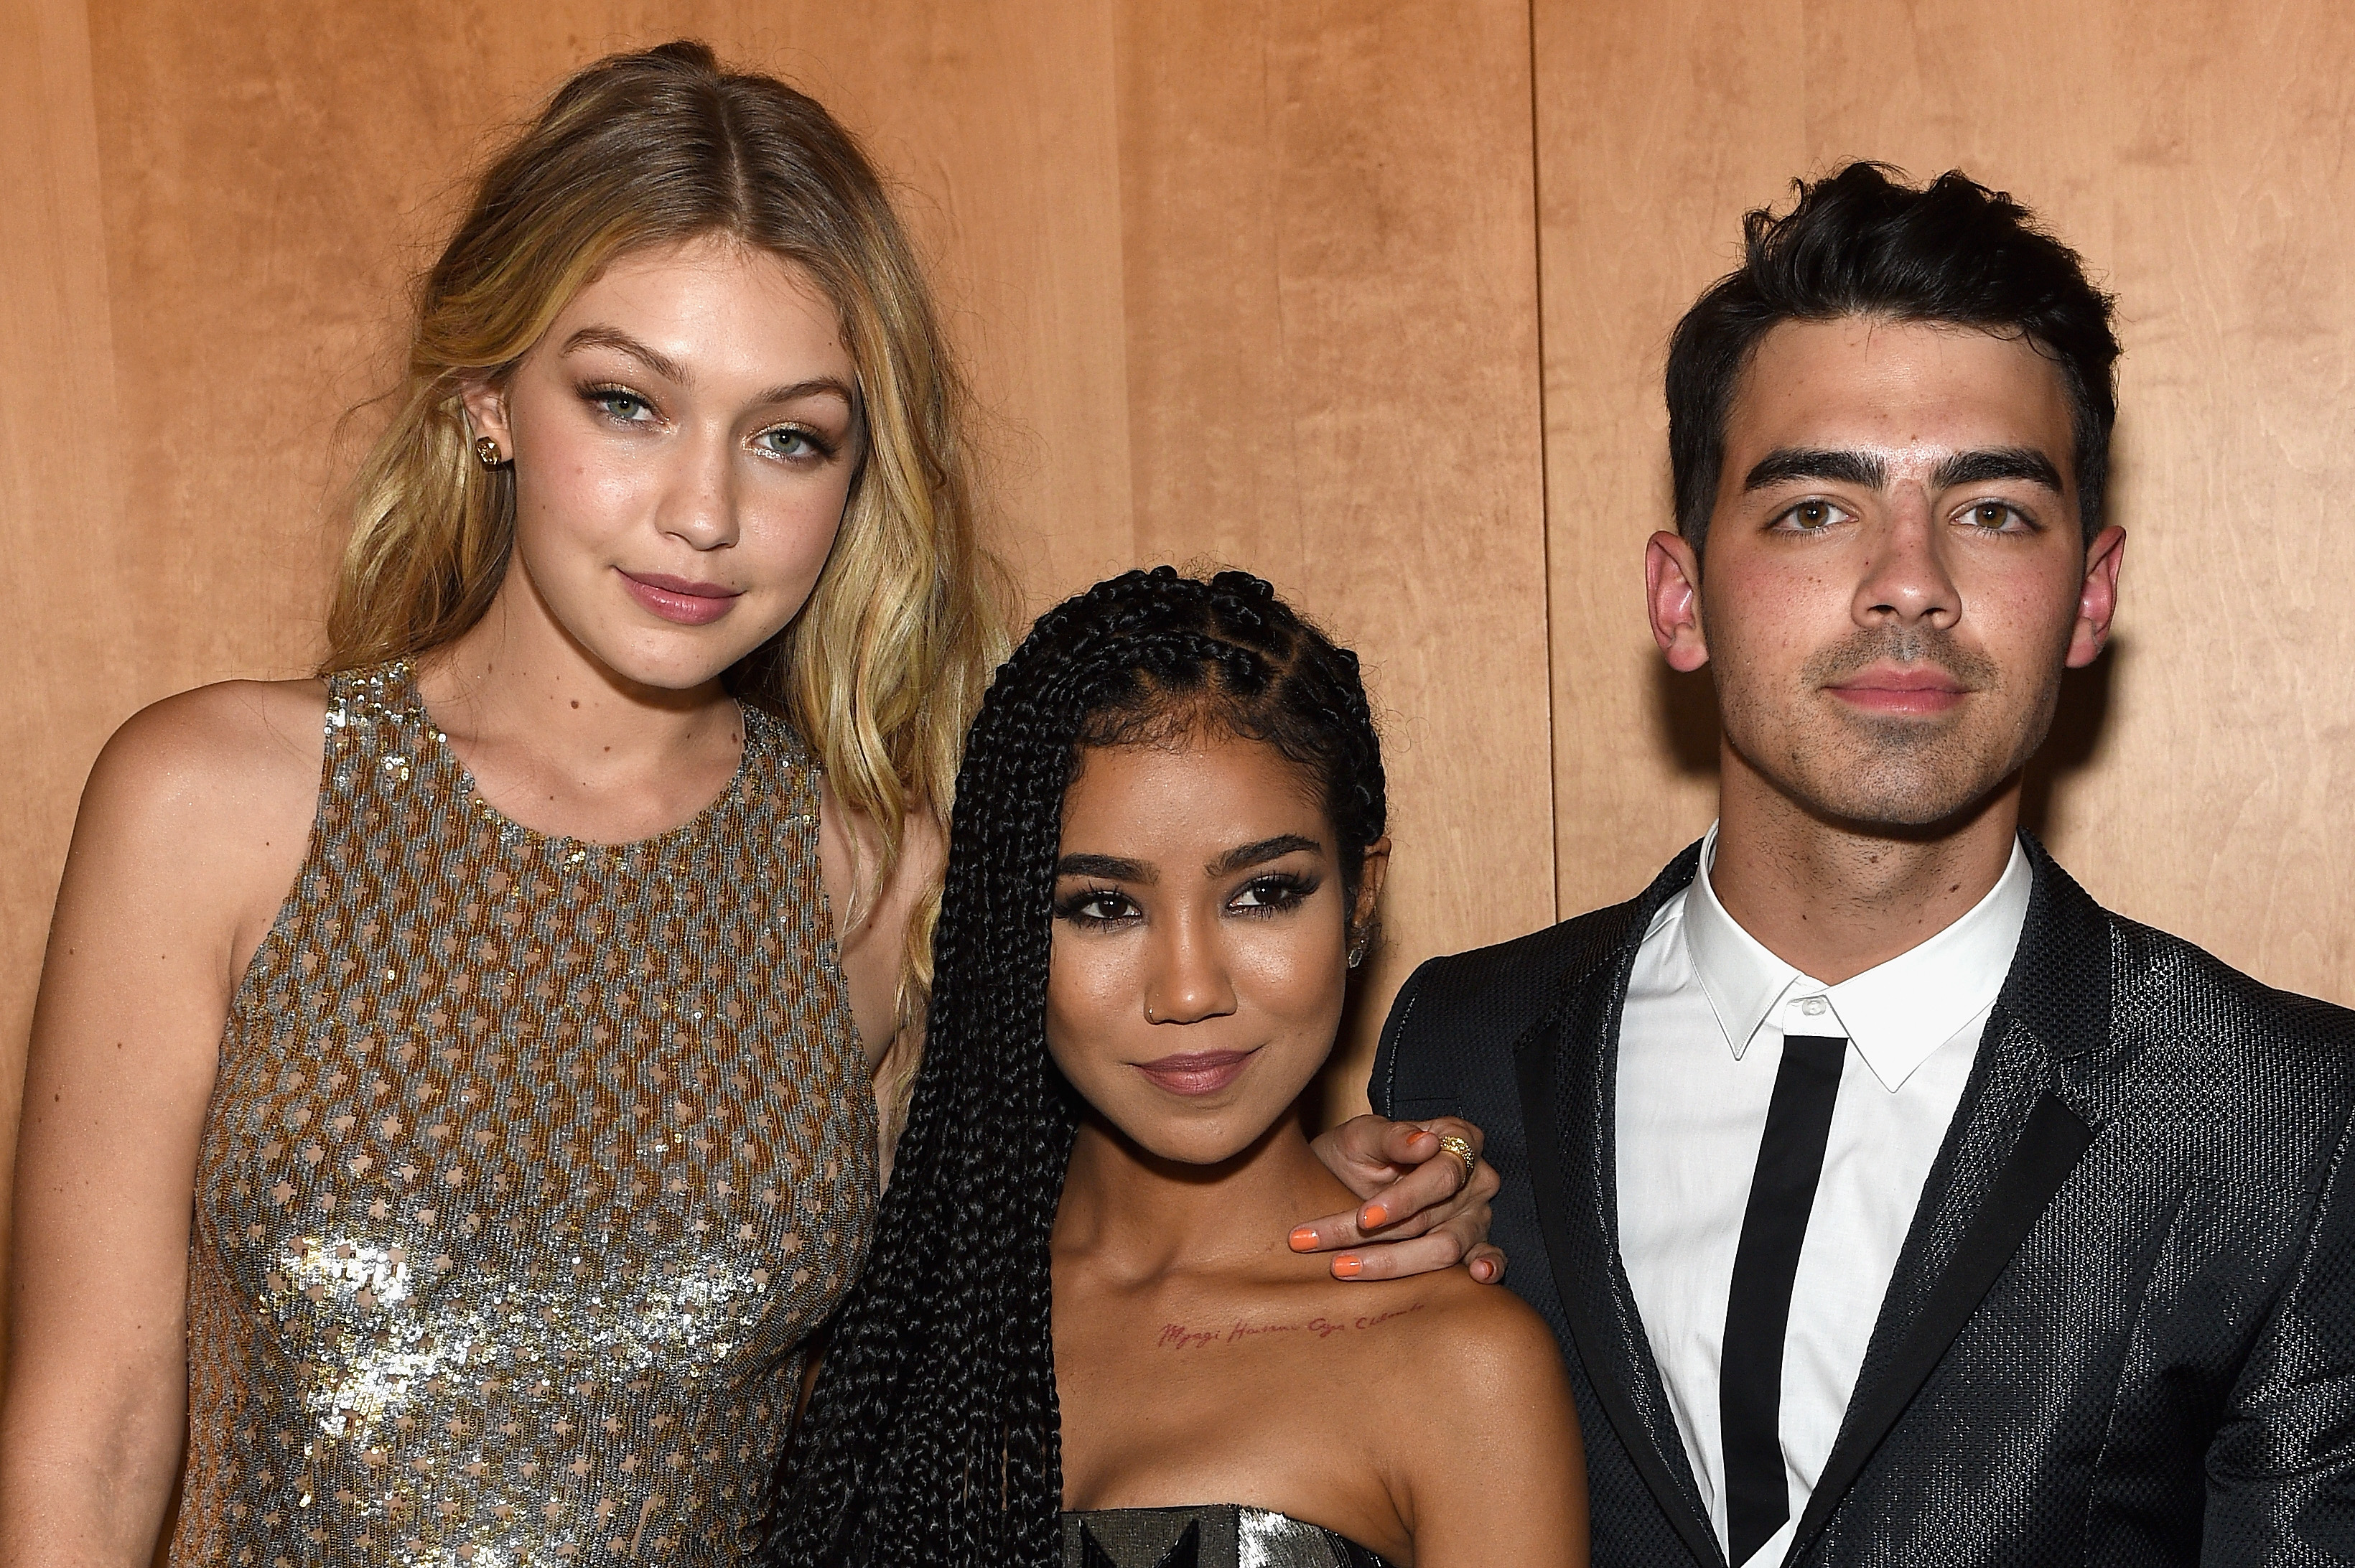 Gigi hadid dating joe jonas